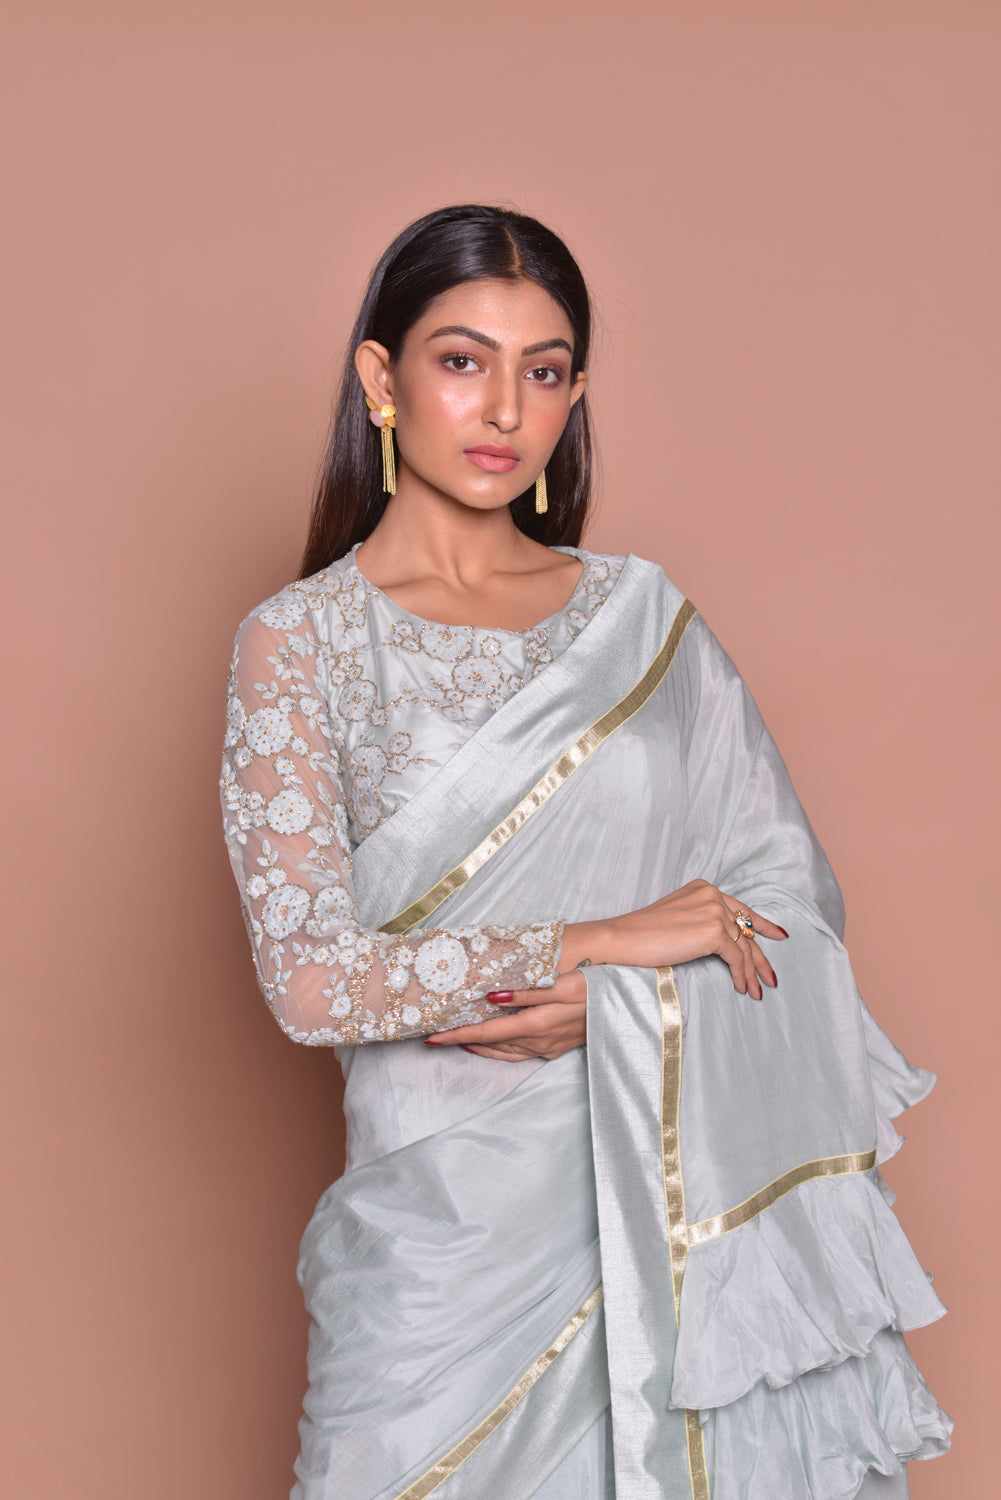 Buy light grey designer sari online in USA with frill pallu and lace saree blouse. Be occasion ready with exquisite range of designer sarees with blouse, bridal sarees from Pure Elegance Indian boutique in USA.-closeup